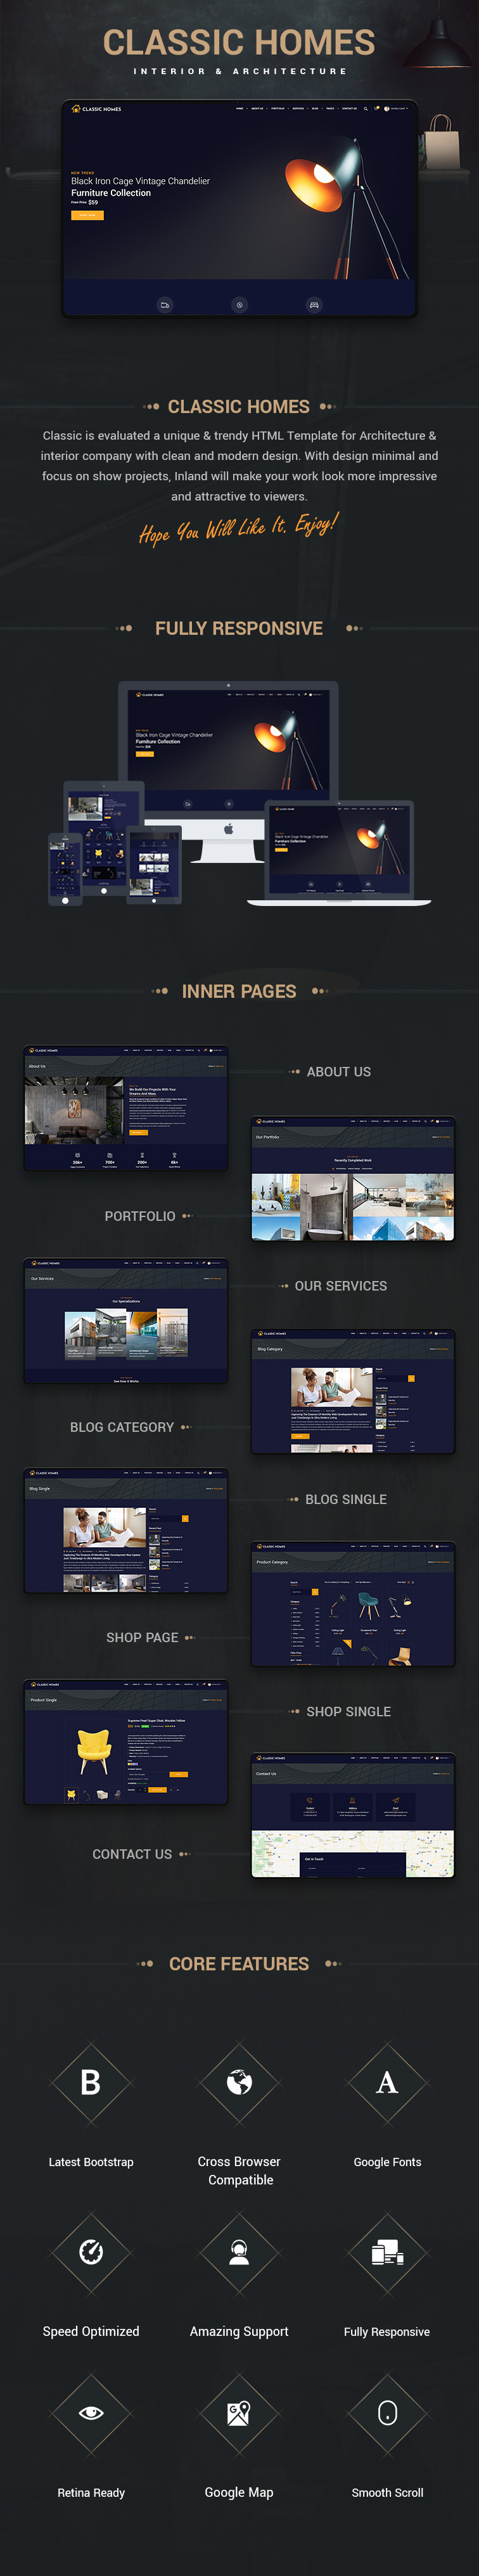 Classic Homes HTML Templates